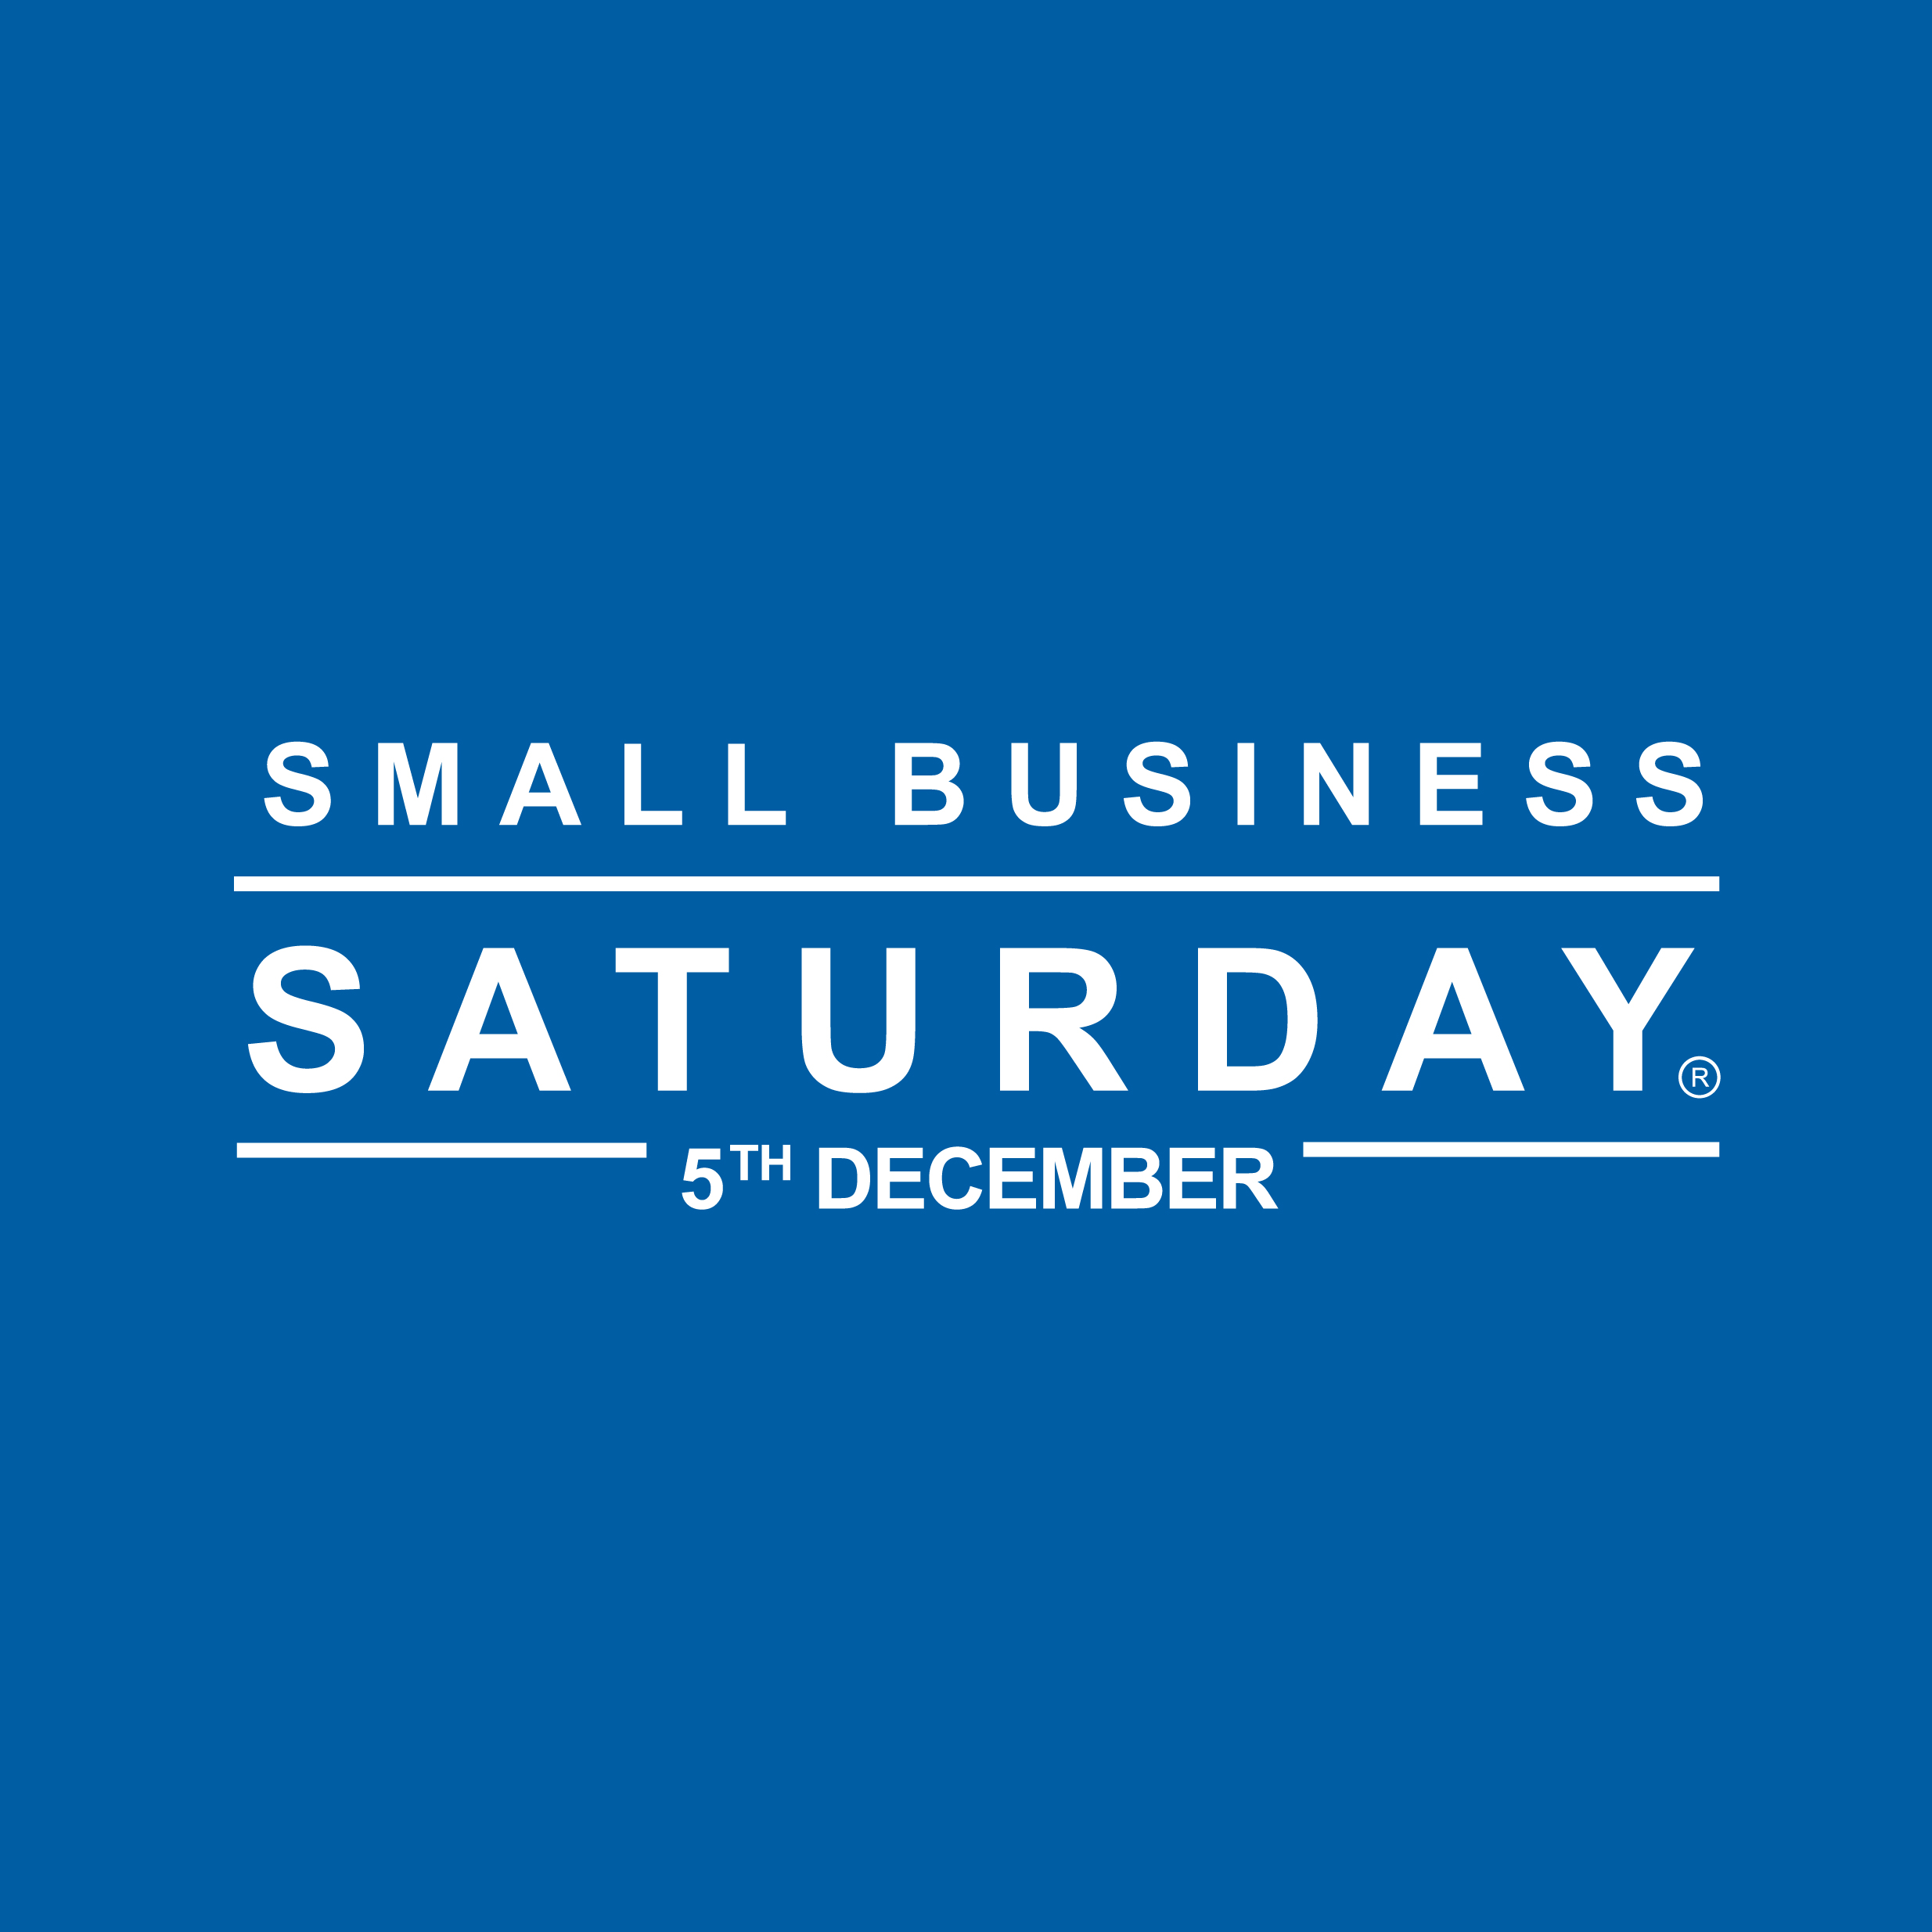 Small Business Saturday – 5 December